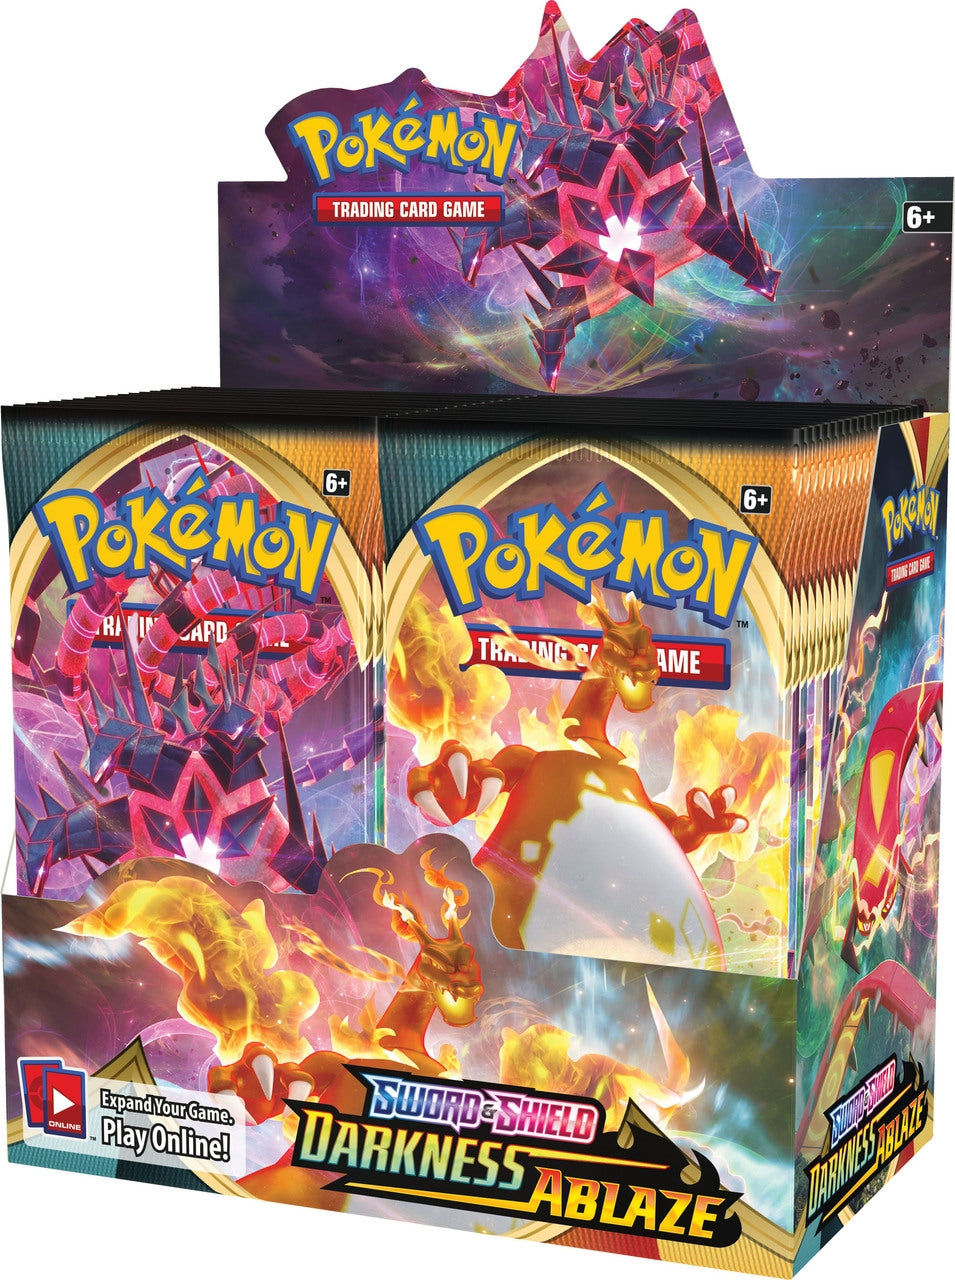 Pokemon: SS3 Darkness Ablaze Booster Box